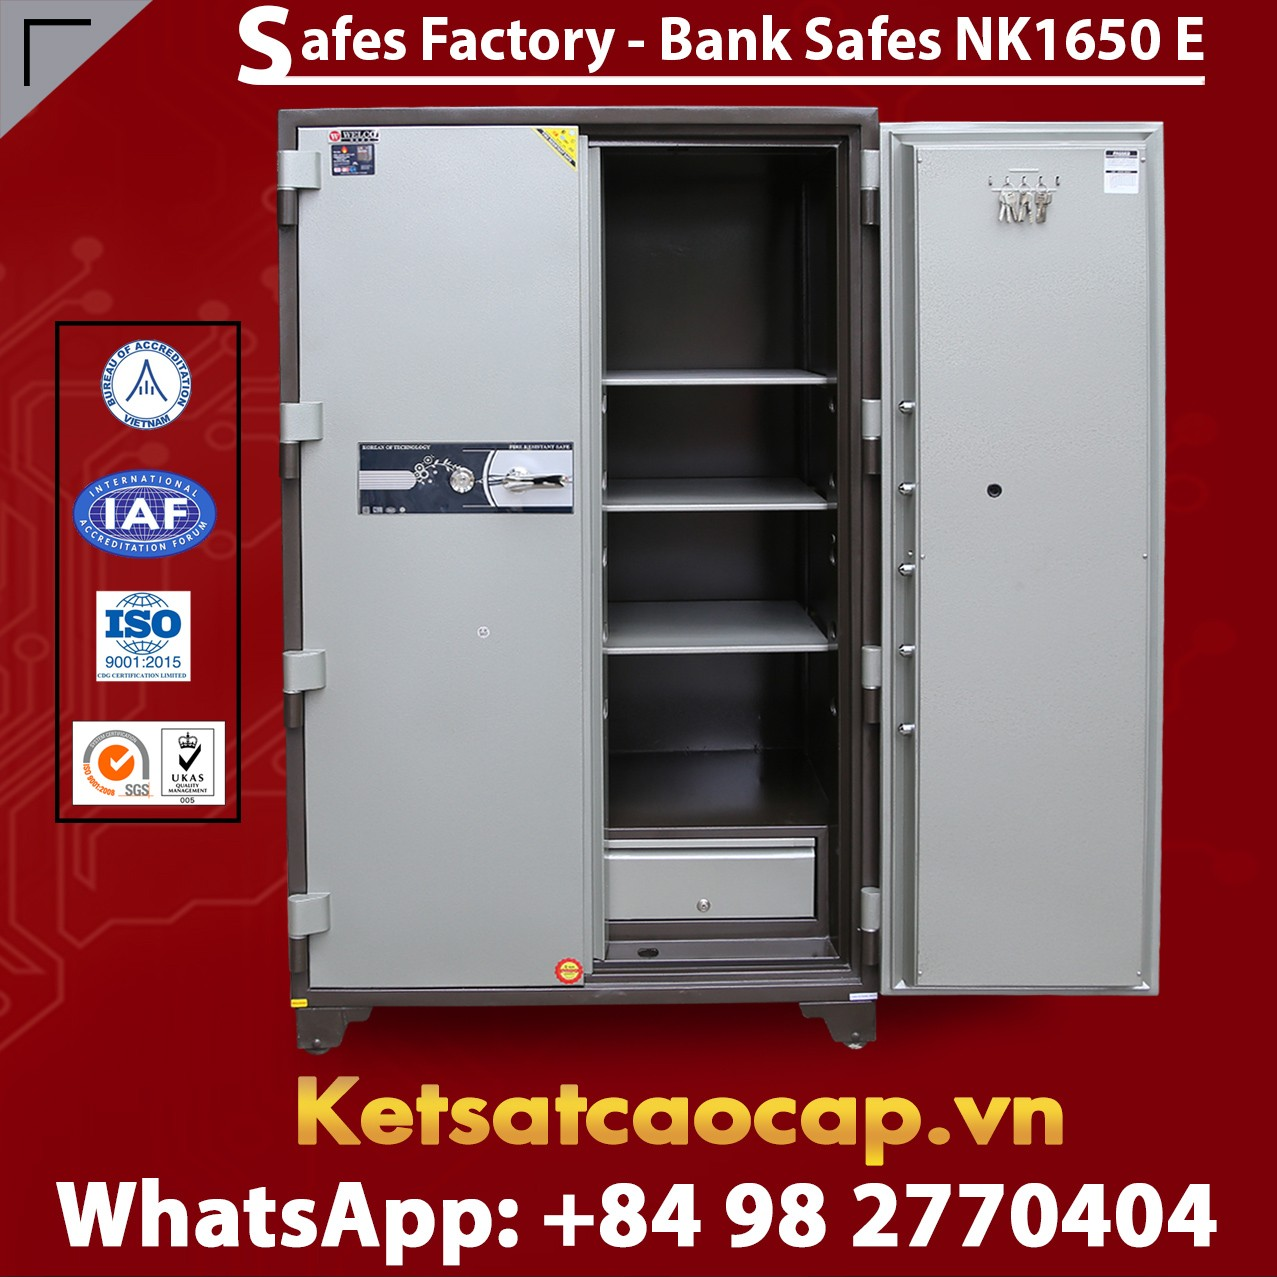 Bank Safes Deposit Box Wholesale Suppliers